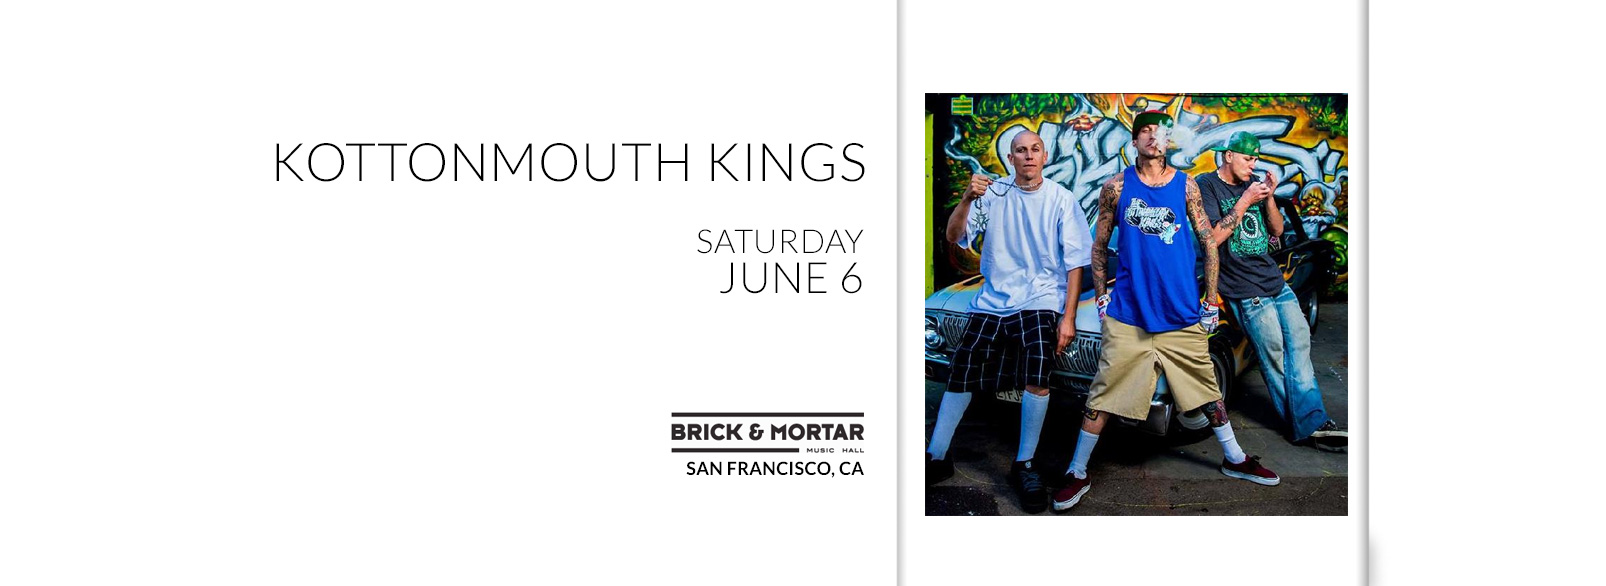 Kottonmouth Kings @ Brick & Mortar